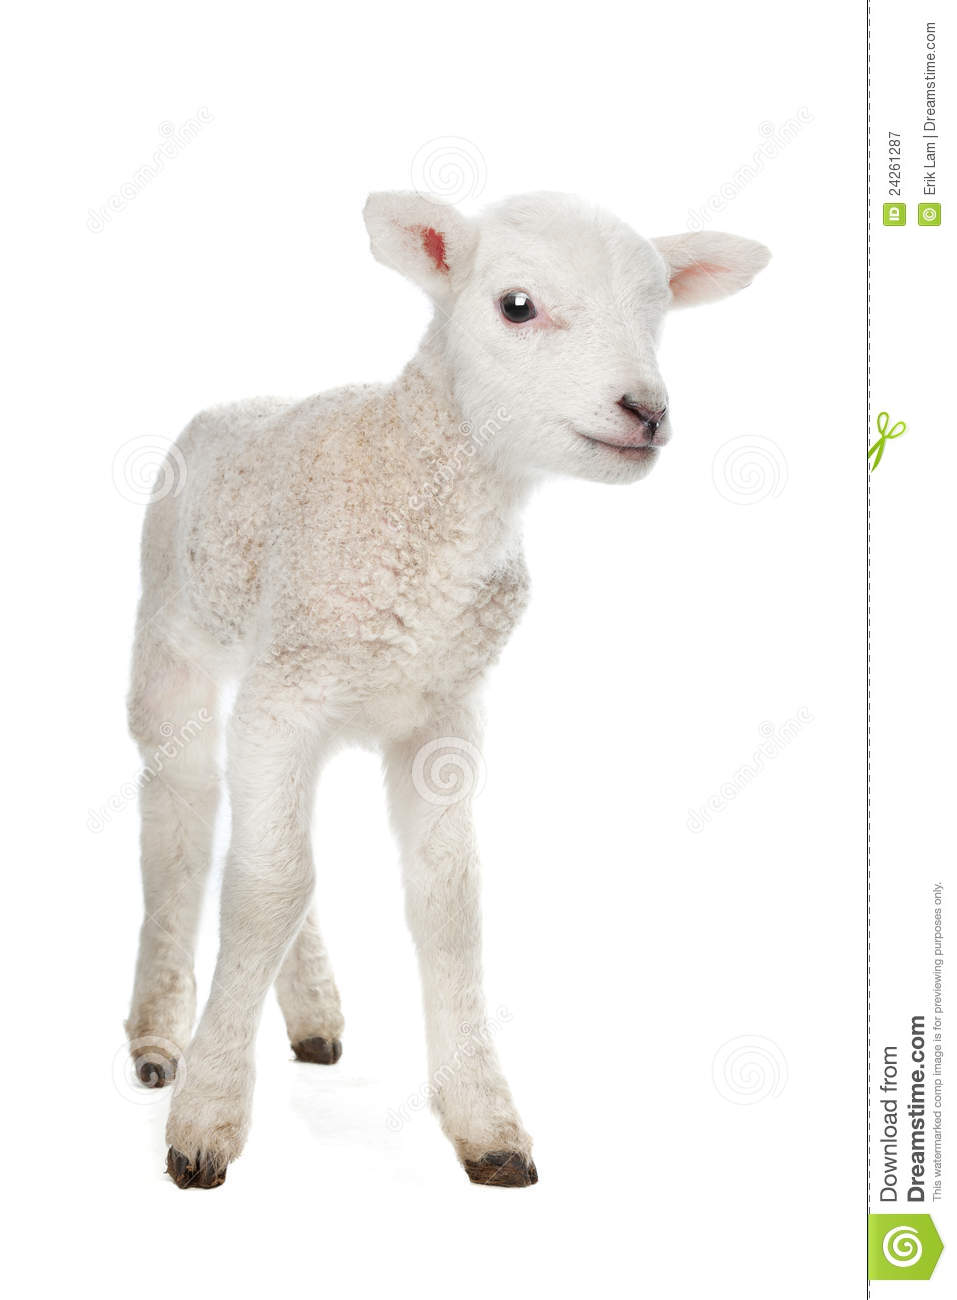 Few days old Lamb standing in front of a white background.